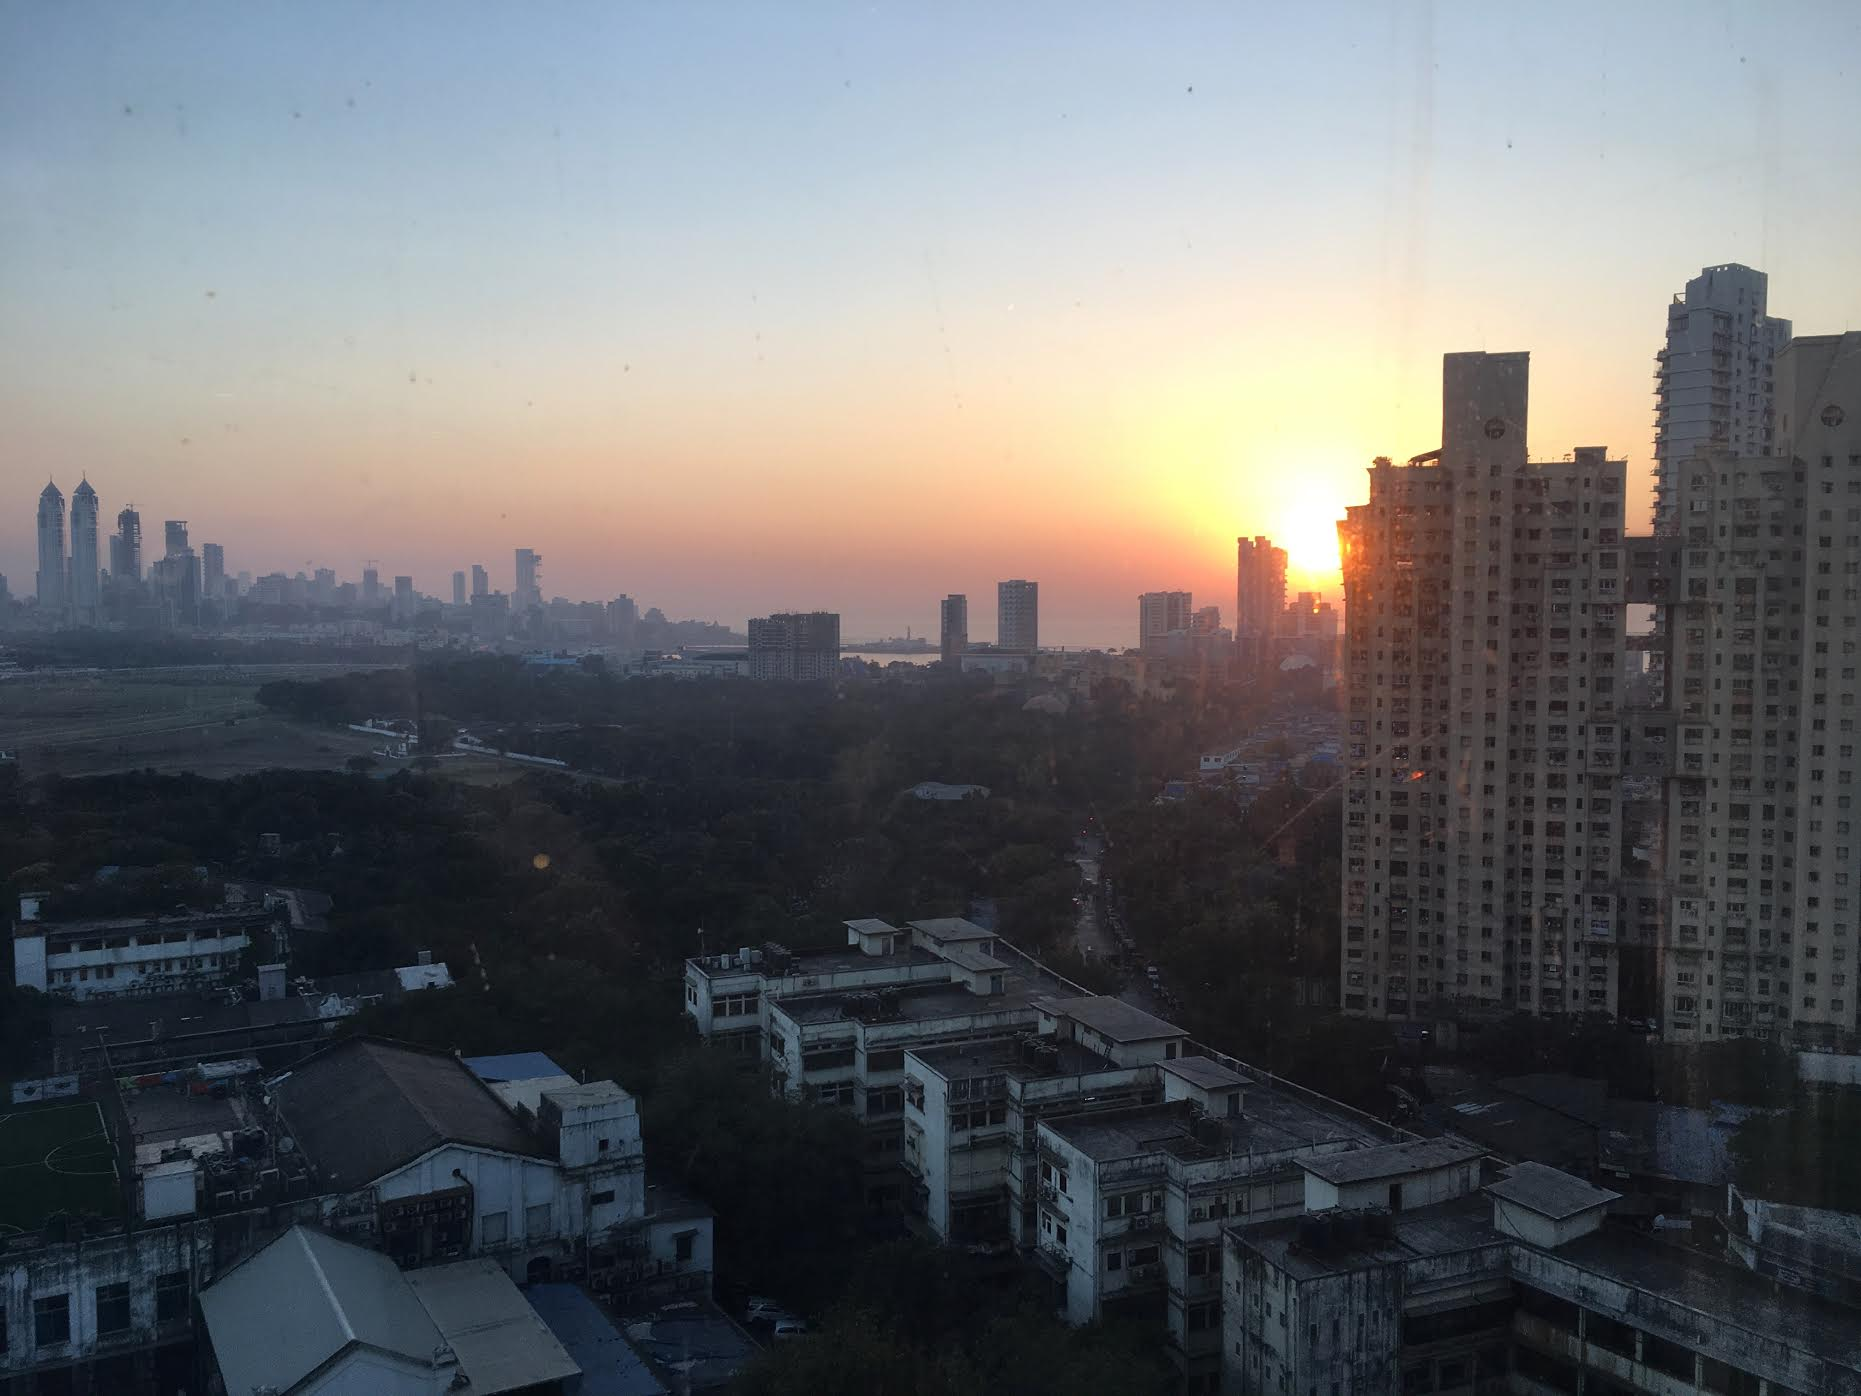 Sunset from St. Regis, Mumbai